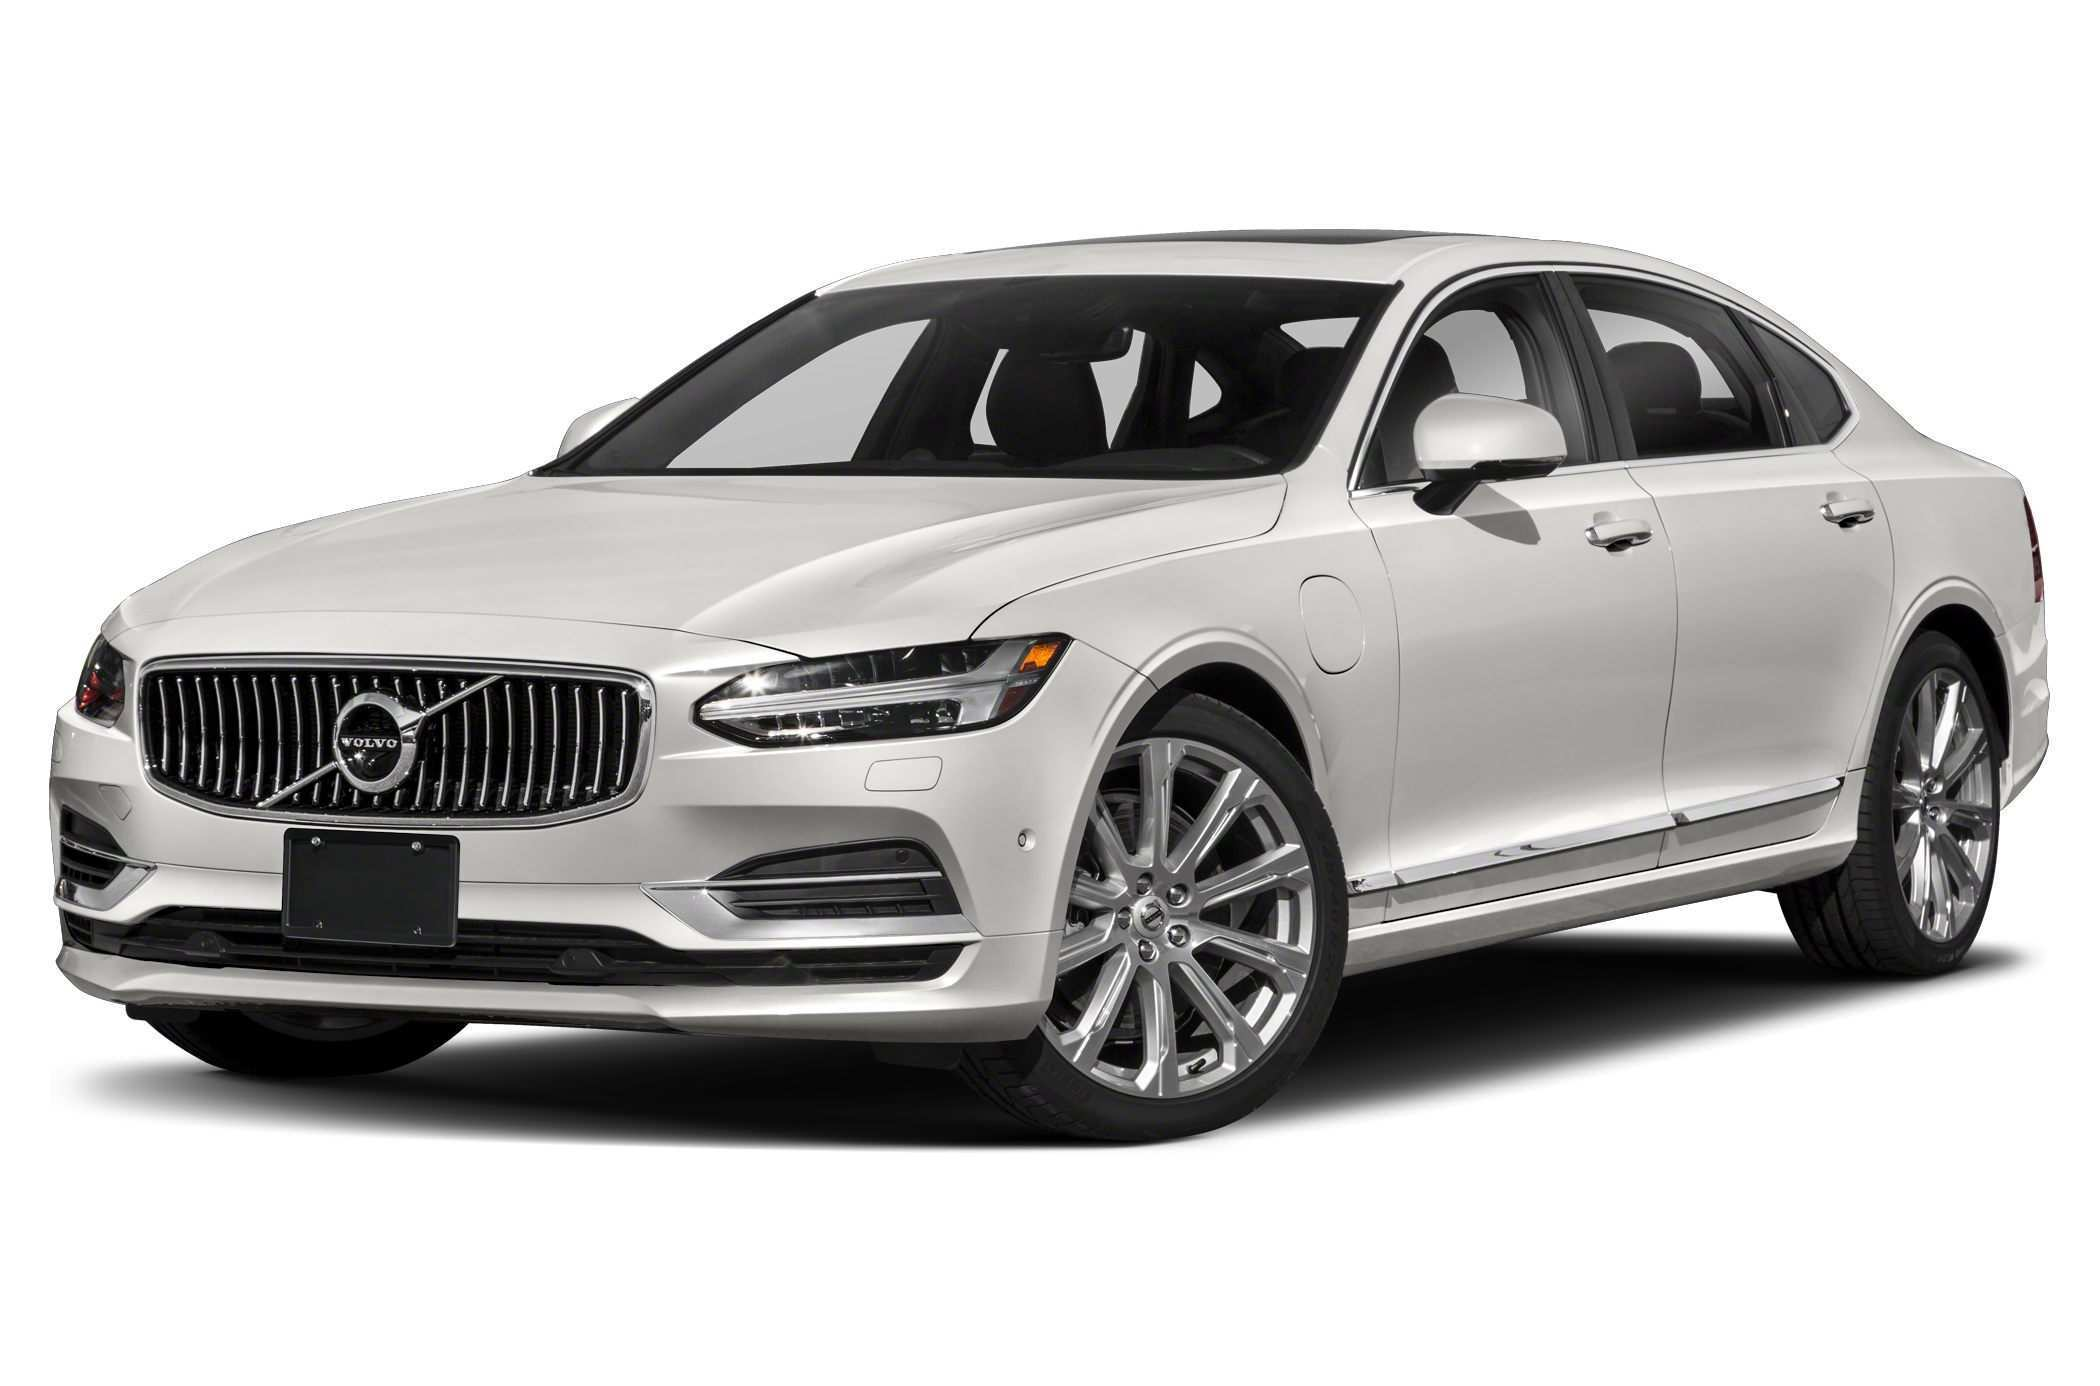 63 Best Review 2019 Volvo T8 Rumors for 2019 Volvo T8